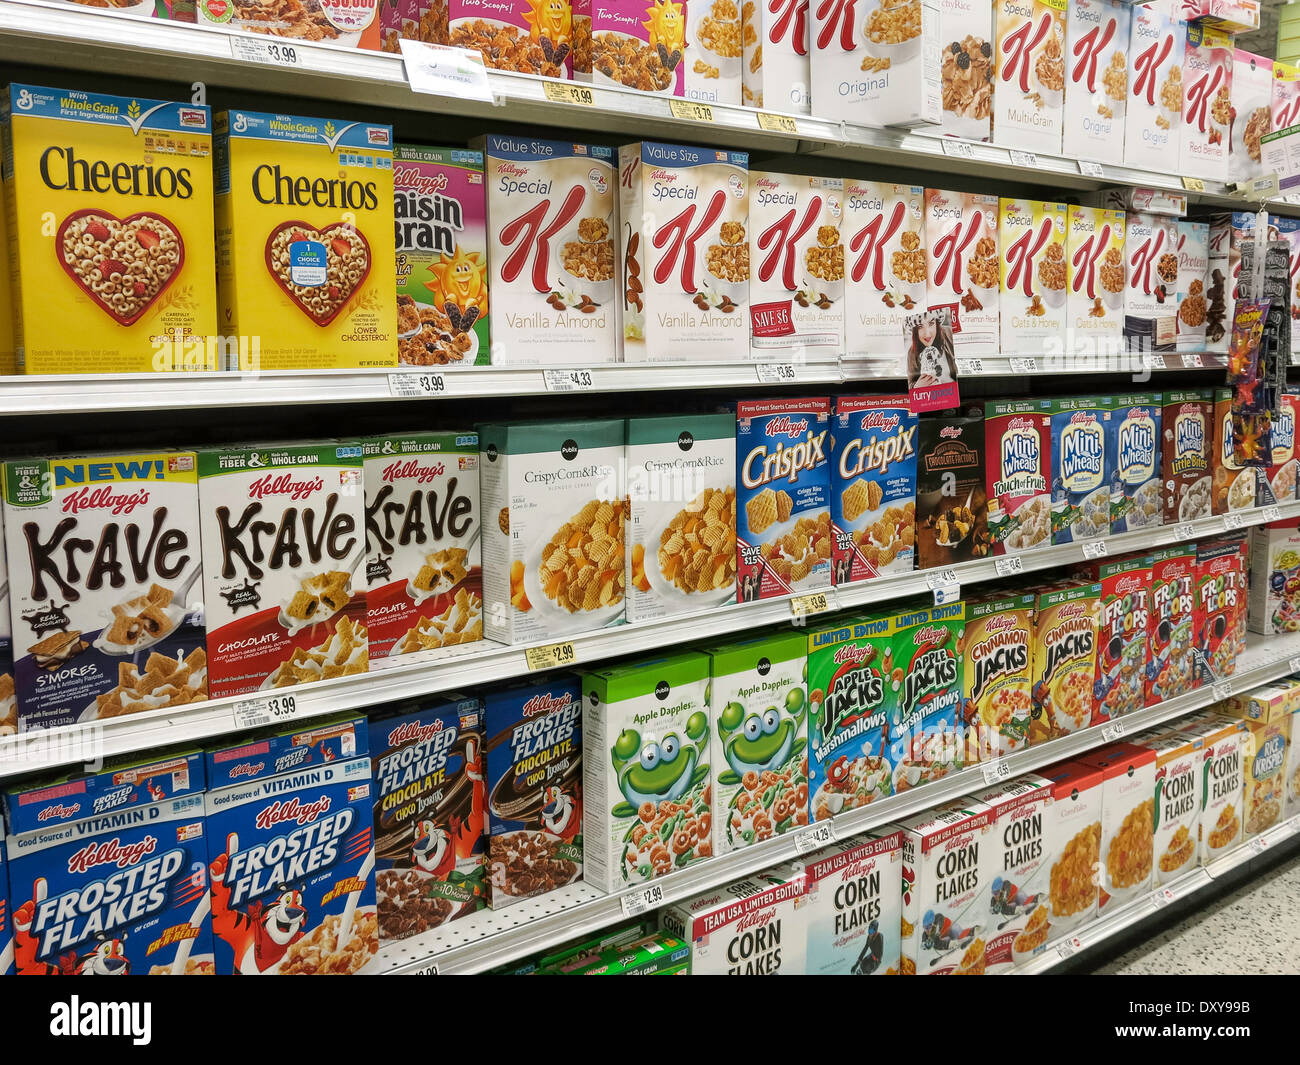 Cereal Section, Publix Super Market in Tampa, Florida - Stock Image